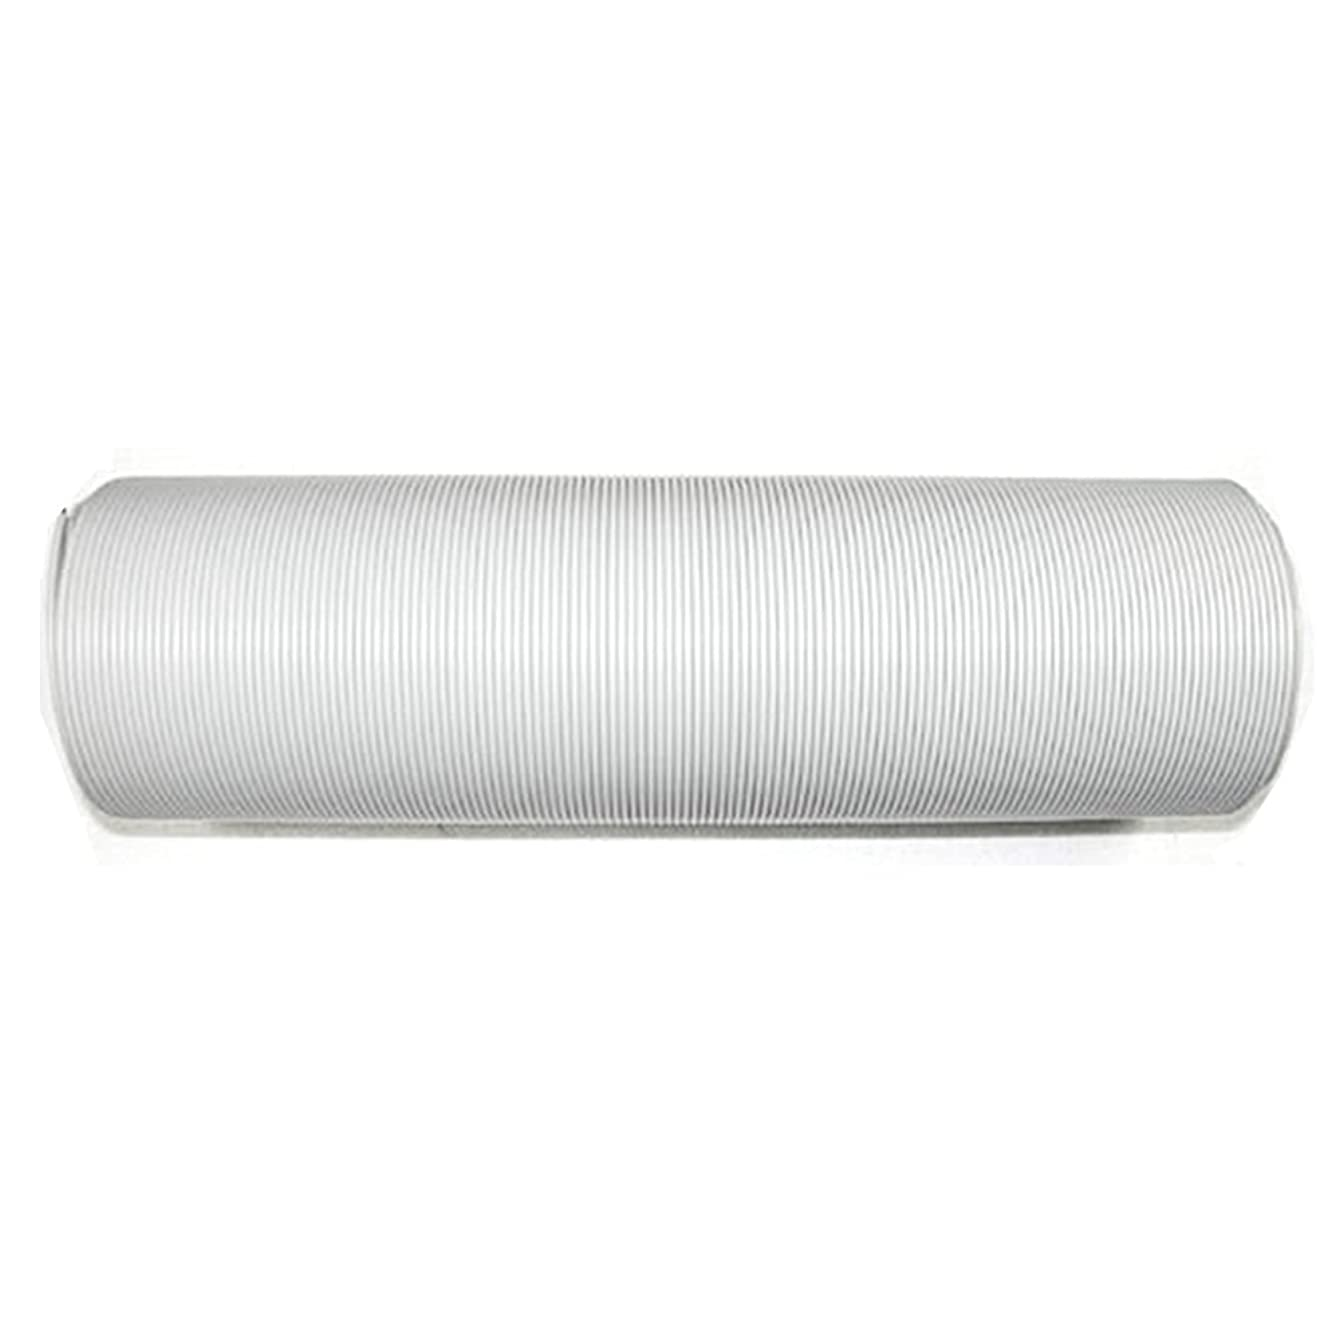 Whynter Intake / Exhaust Hose for Portable Air Conditioner, 5.9 inch diameter, (ARC-EH-TYPE-L)